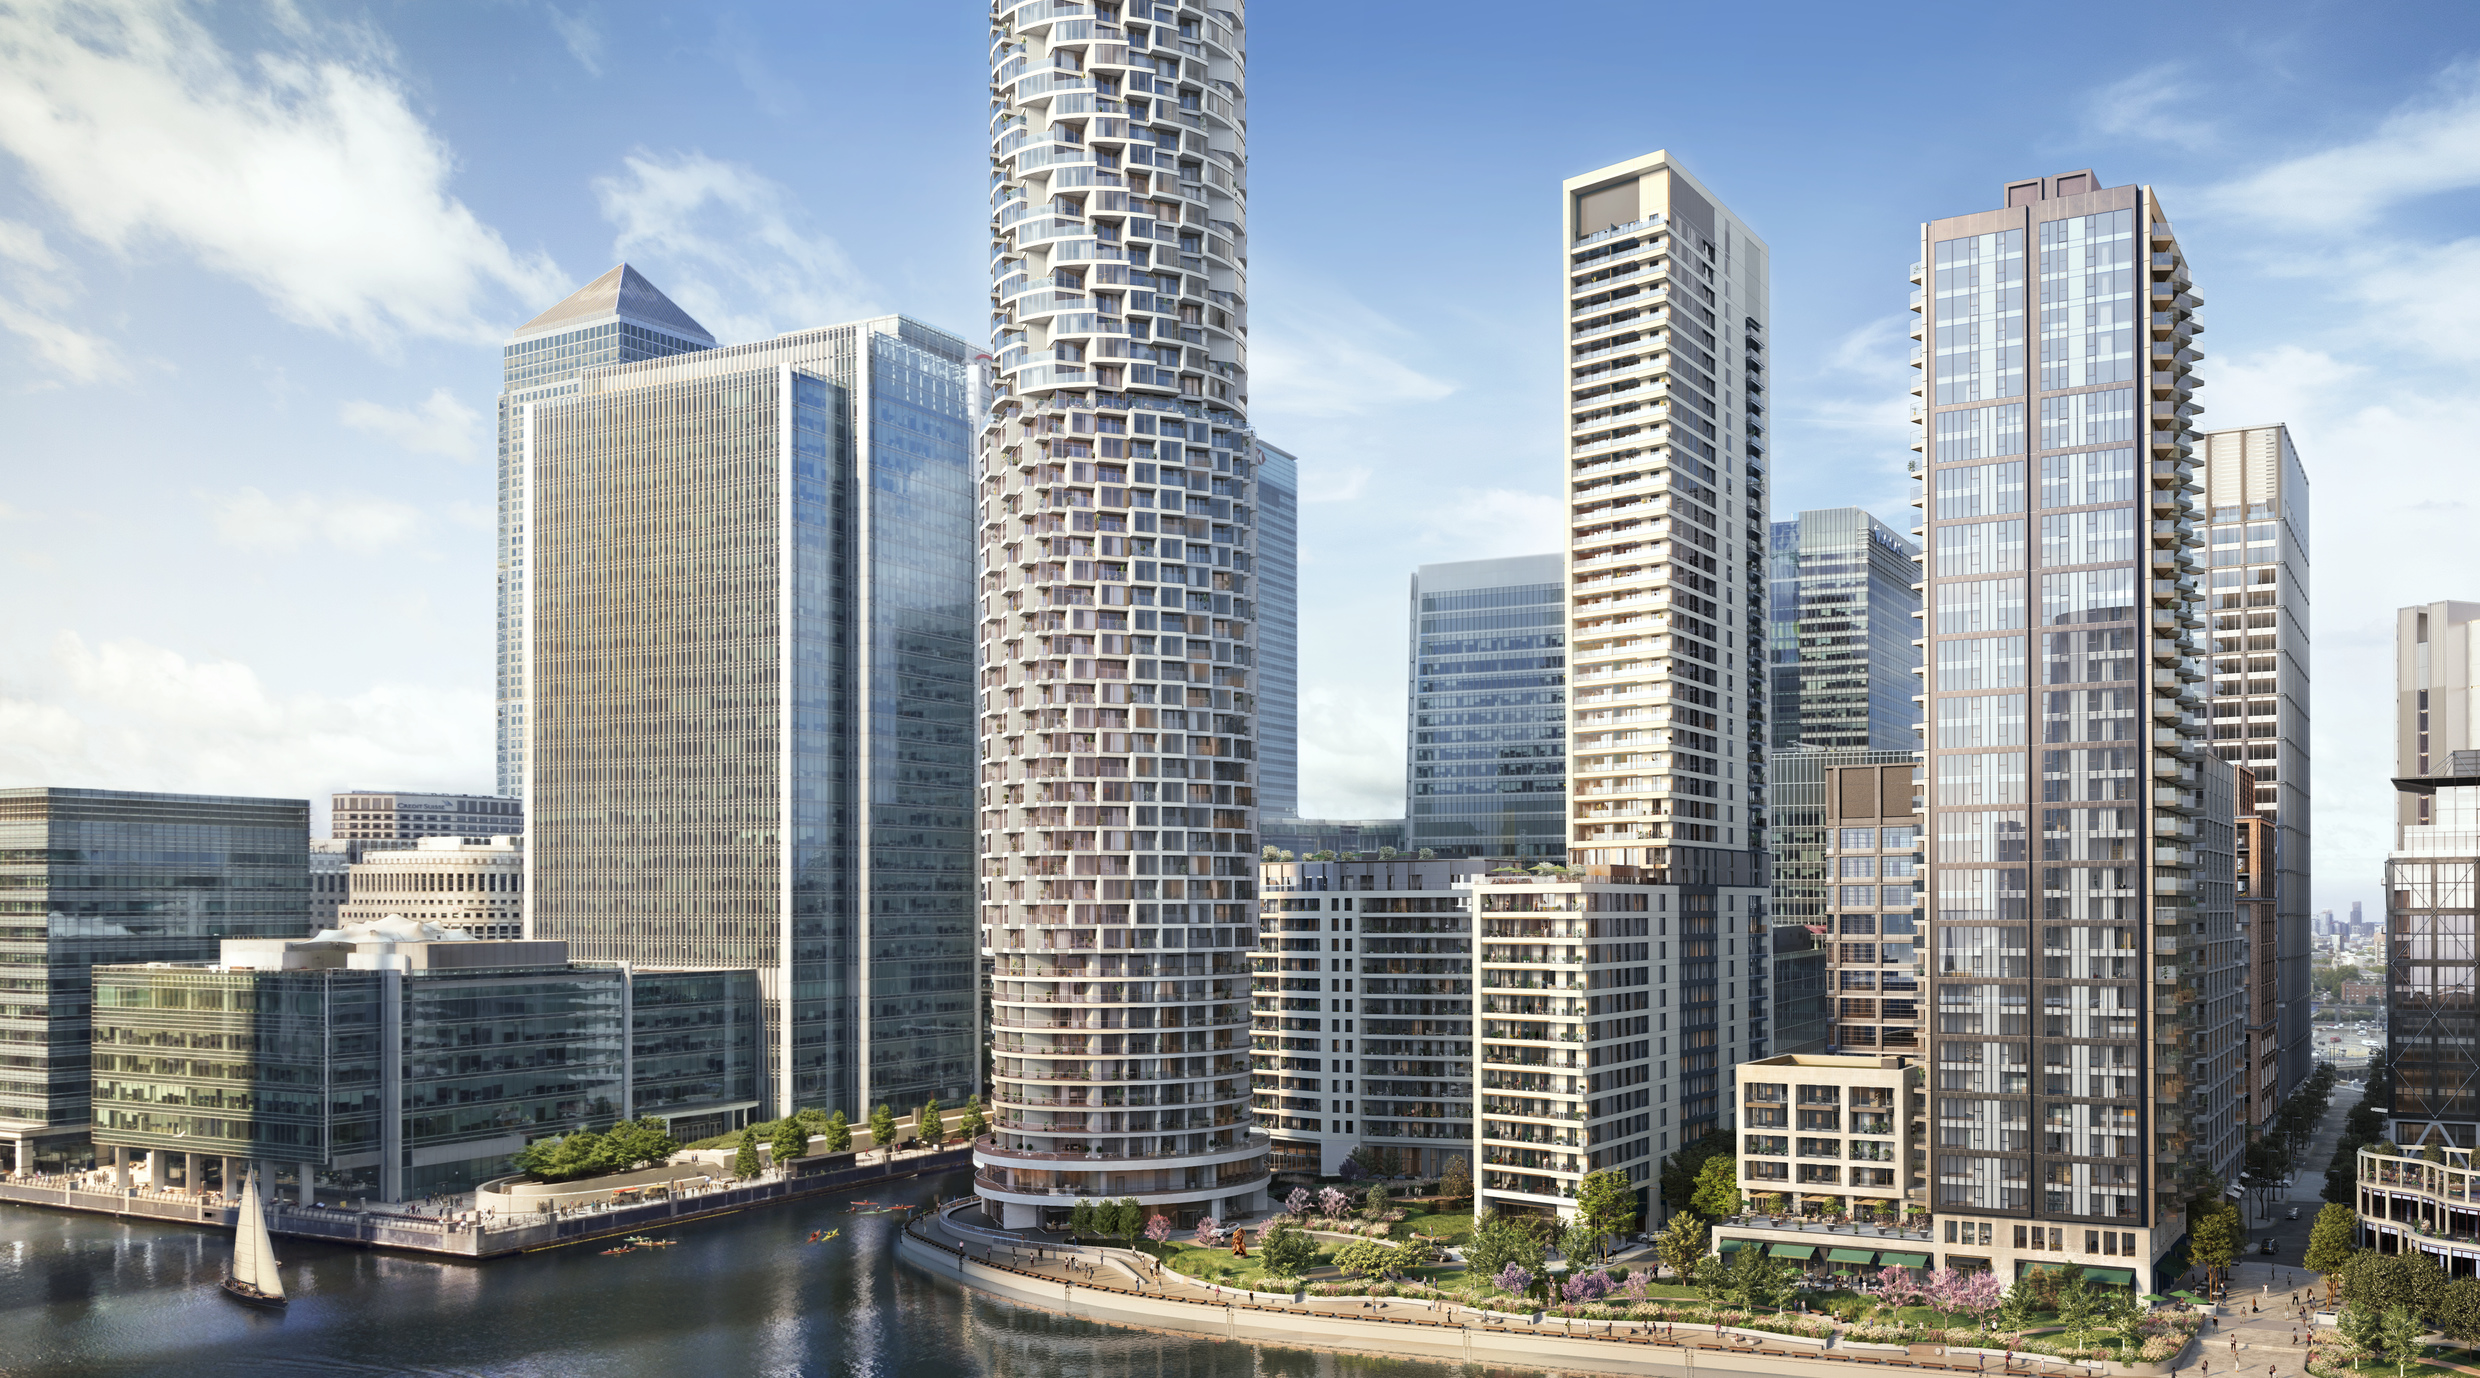 London Calling The Latest Residential Developments From The UK Fascinating Herzog De Meuron To Design Residential High Rise In London